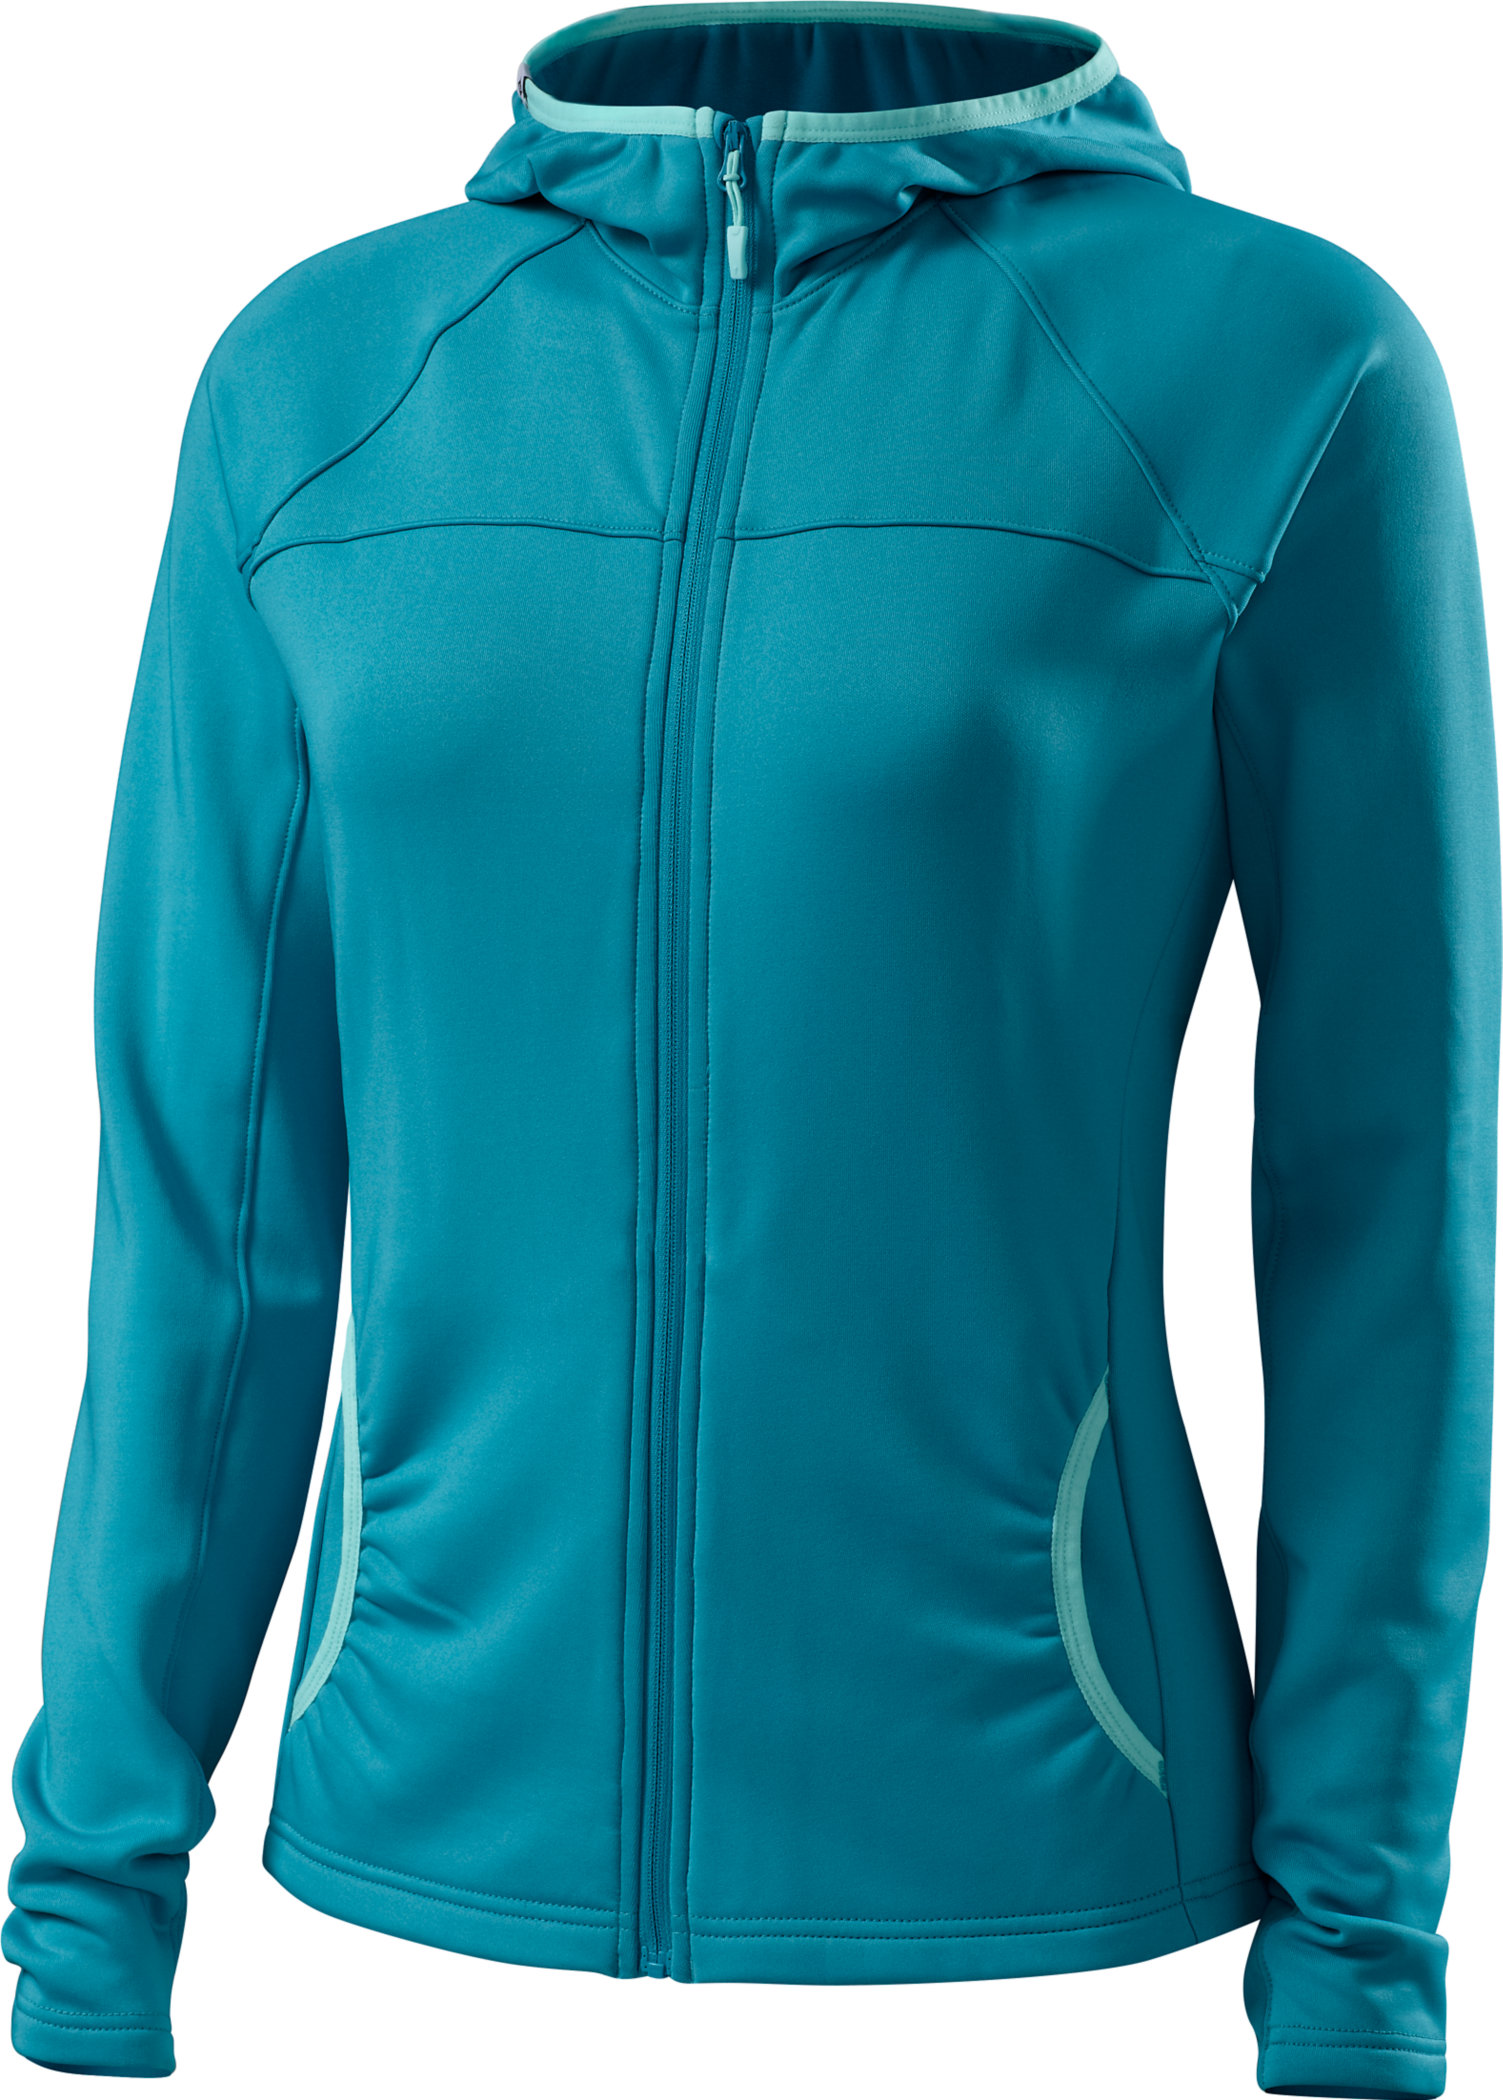 Specialized Women´s Therminal Mountain Jersey Turquoise/Light Teal  Large - Alpha Bikes